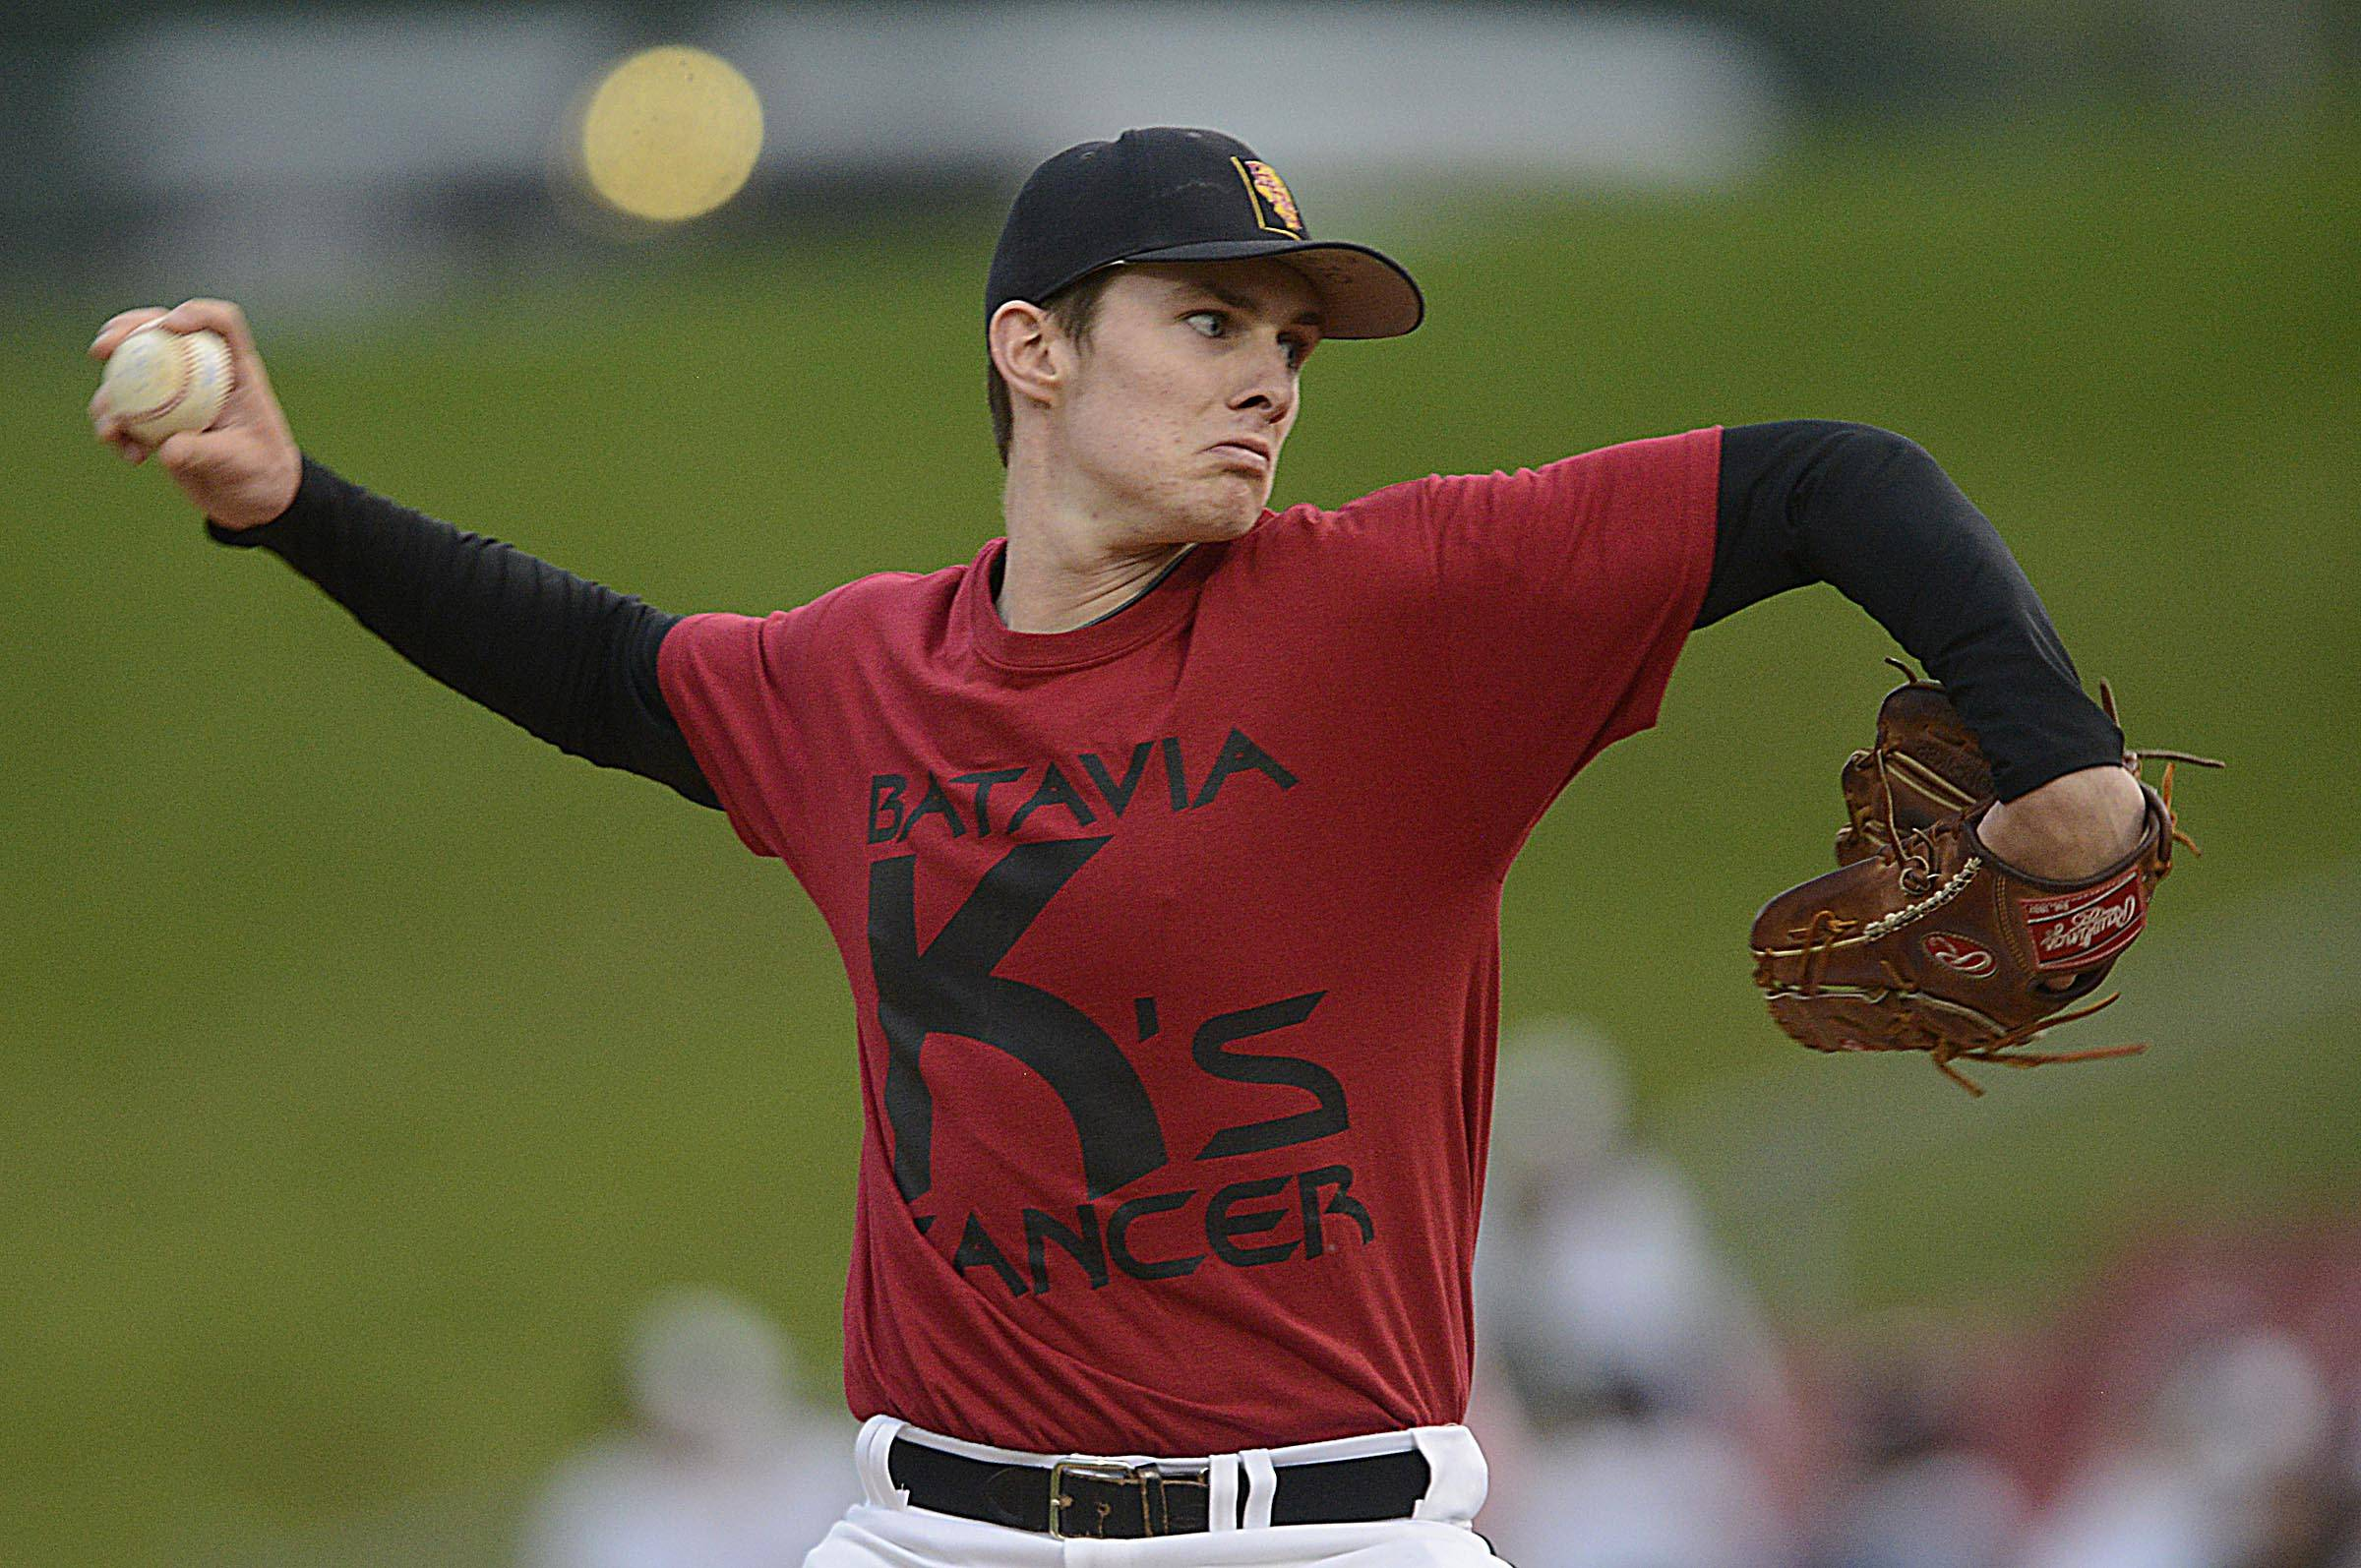 Batavia's Ryan Olson delivers against Kaneland Monday at Fifth Third Ballpark in Geneva.